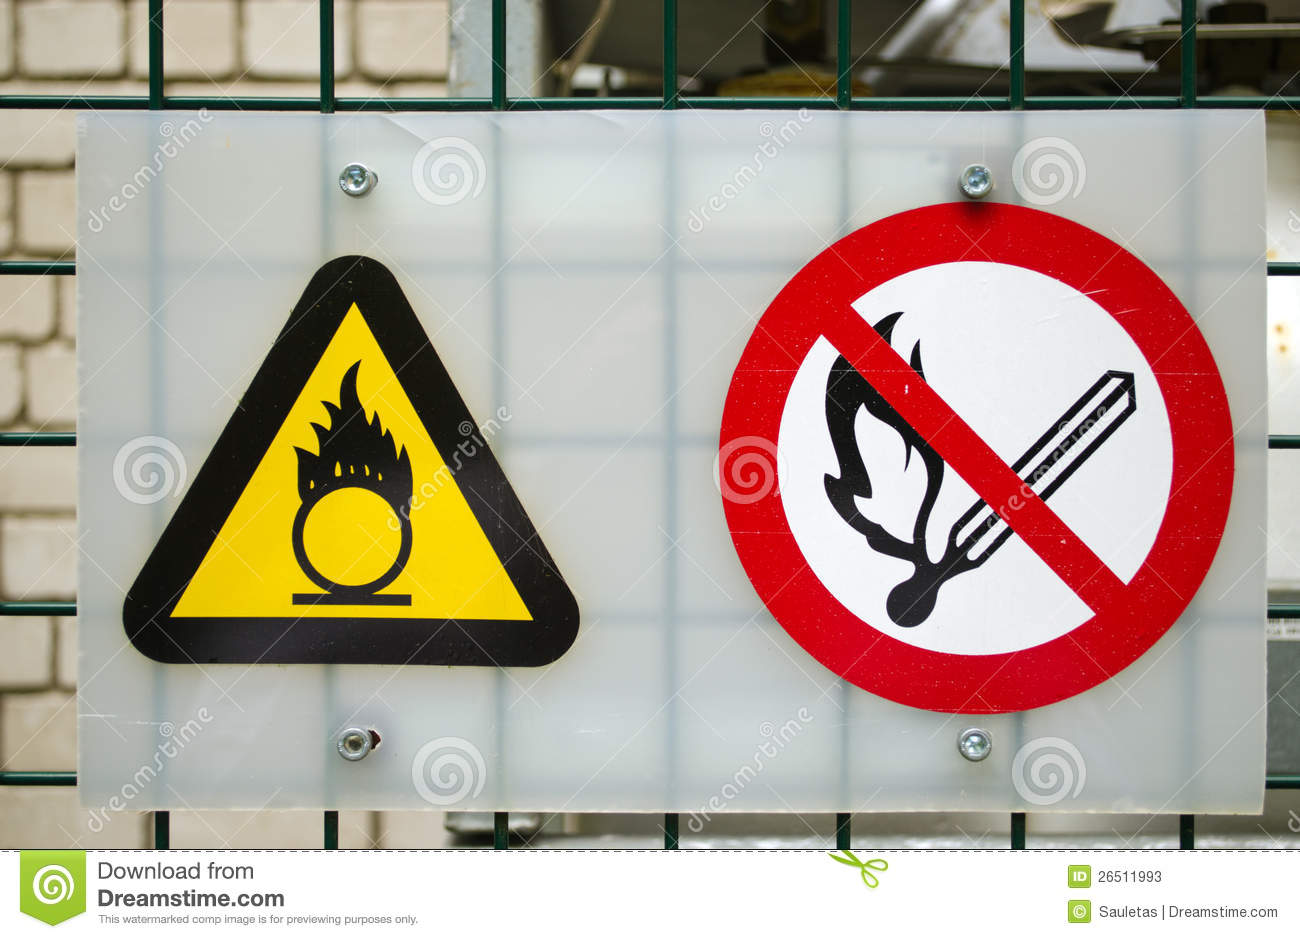 Fire warning signs compressed oxygen gas cylinders